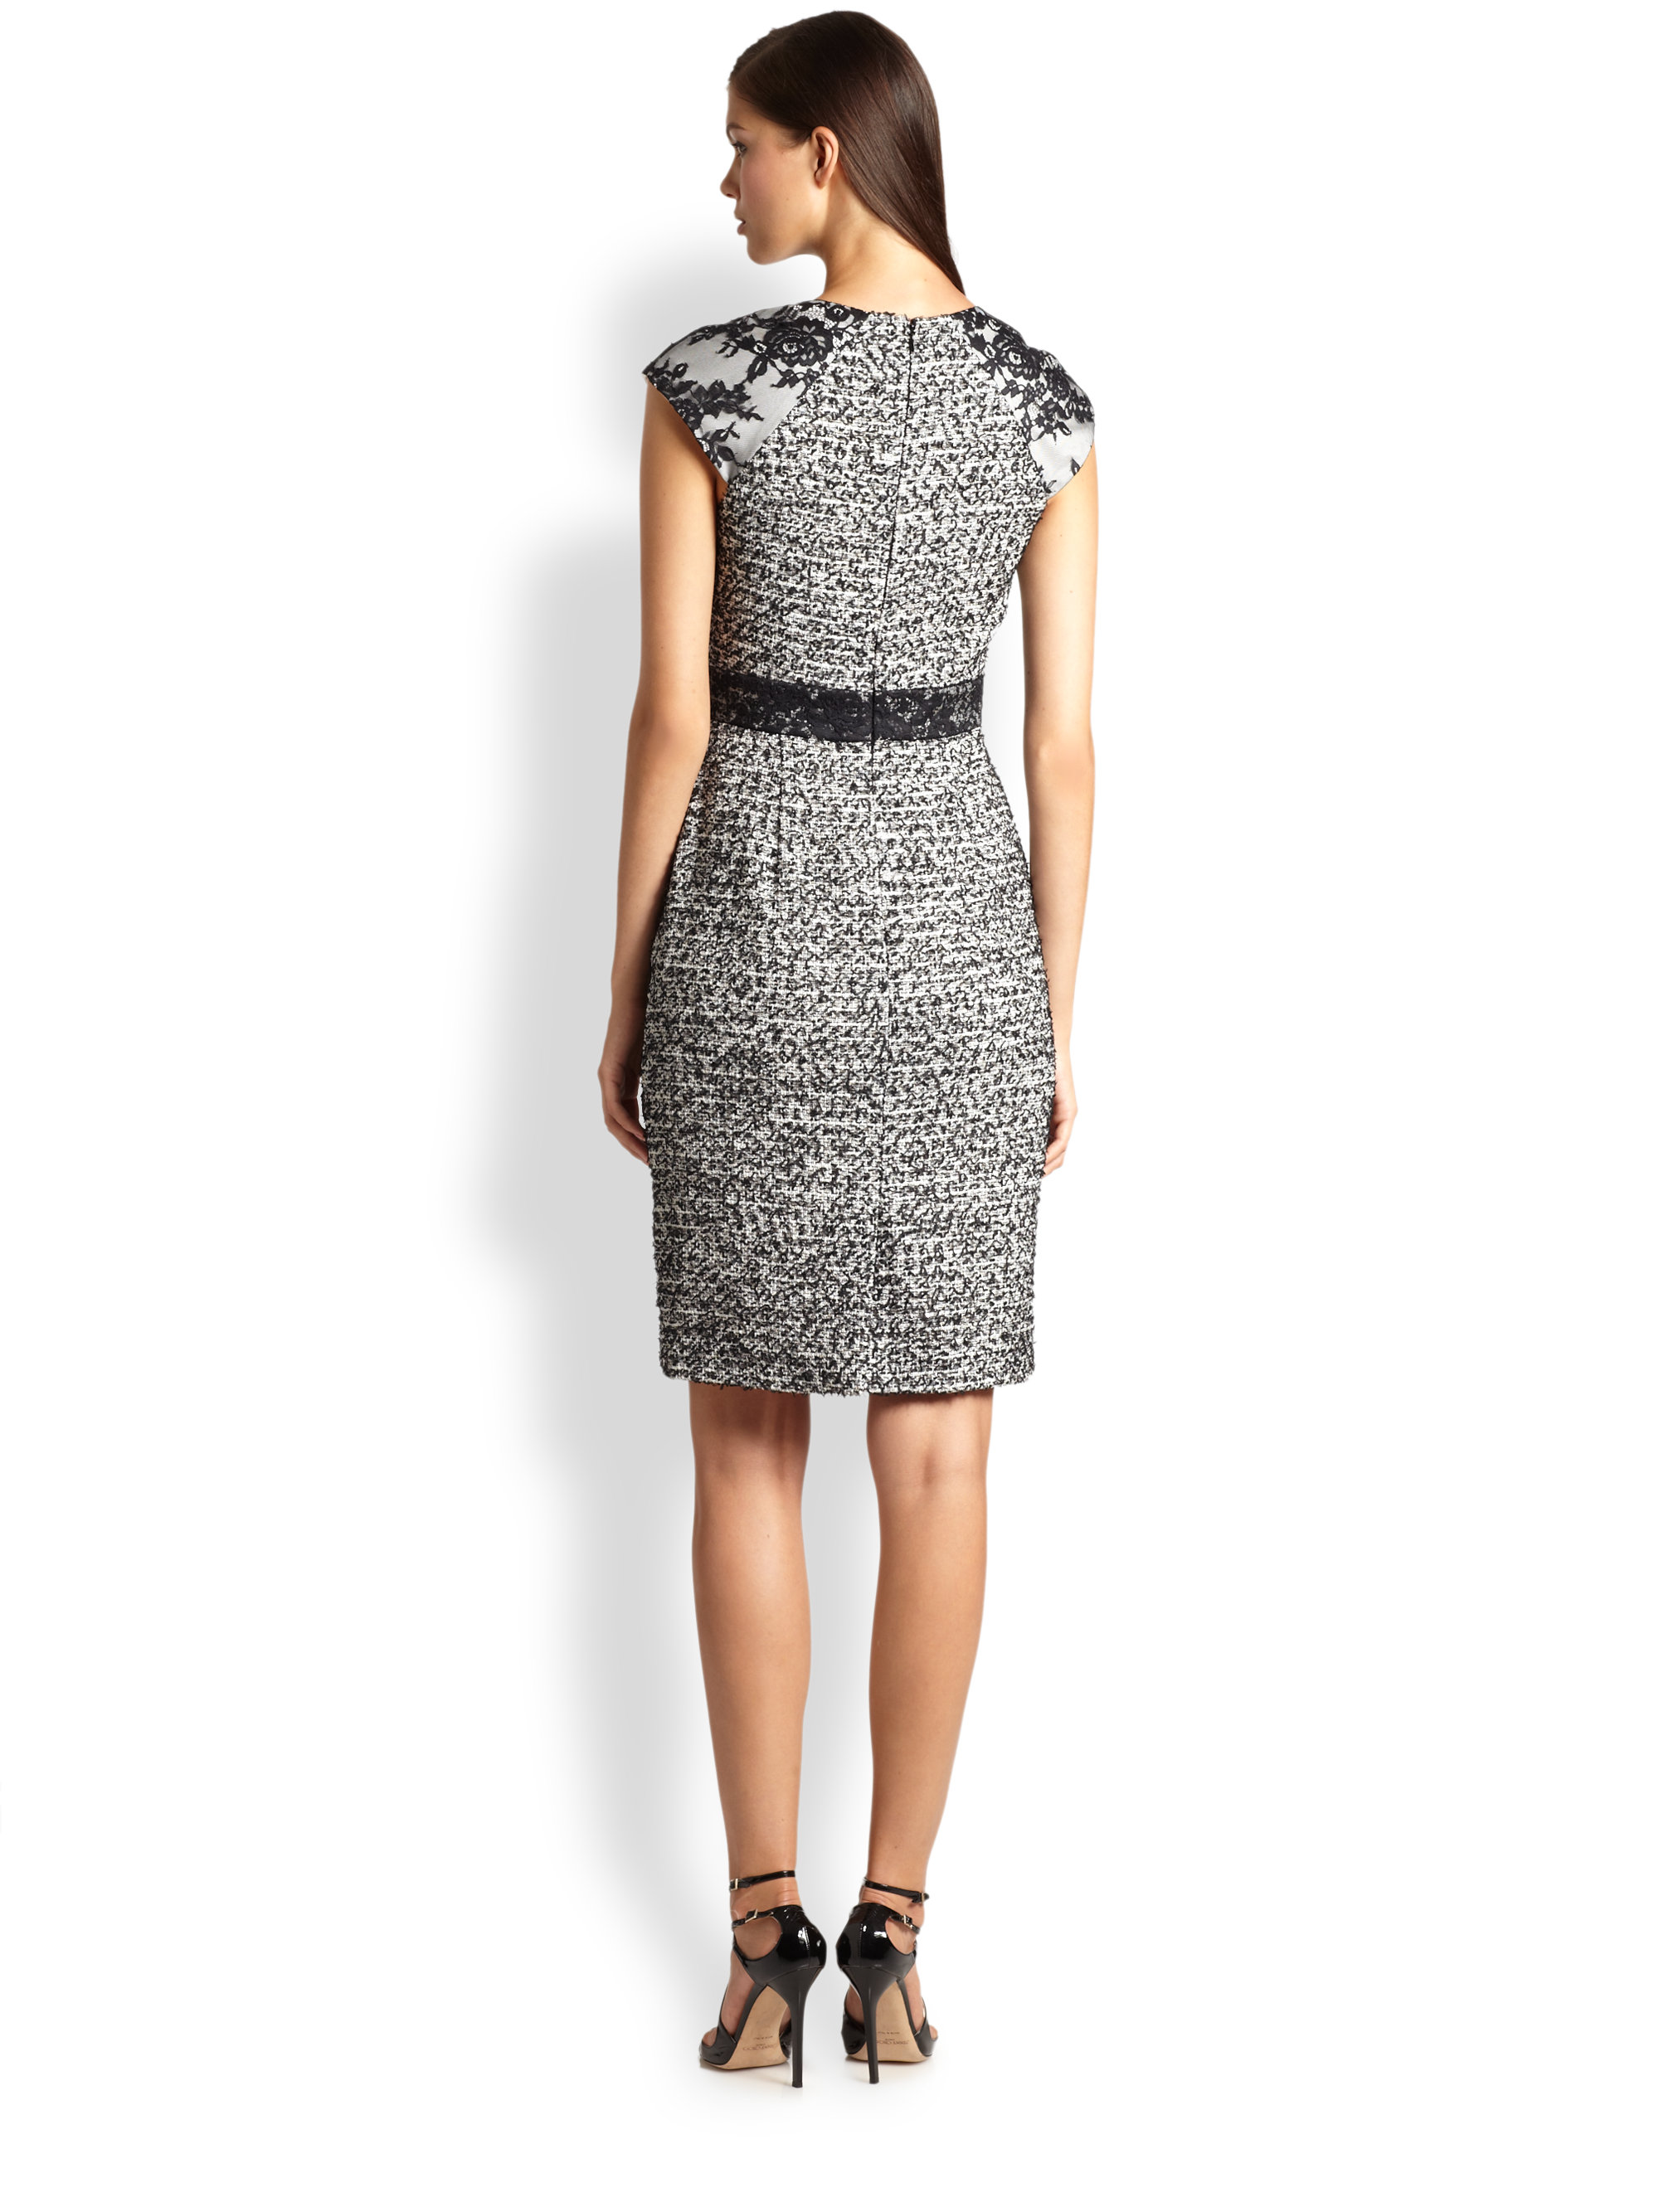 dc24ce4bfb57 Badgley Mischka Lace & Tweed Cocktail Dress in Gray - Lyst